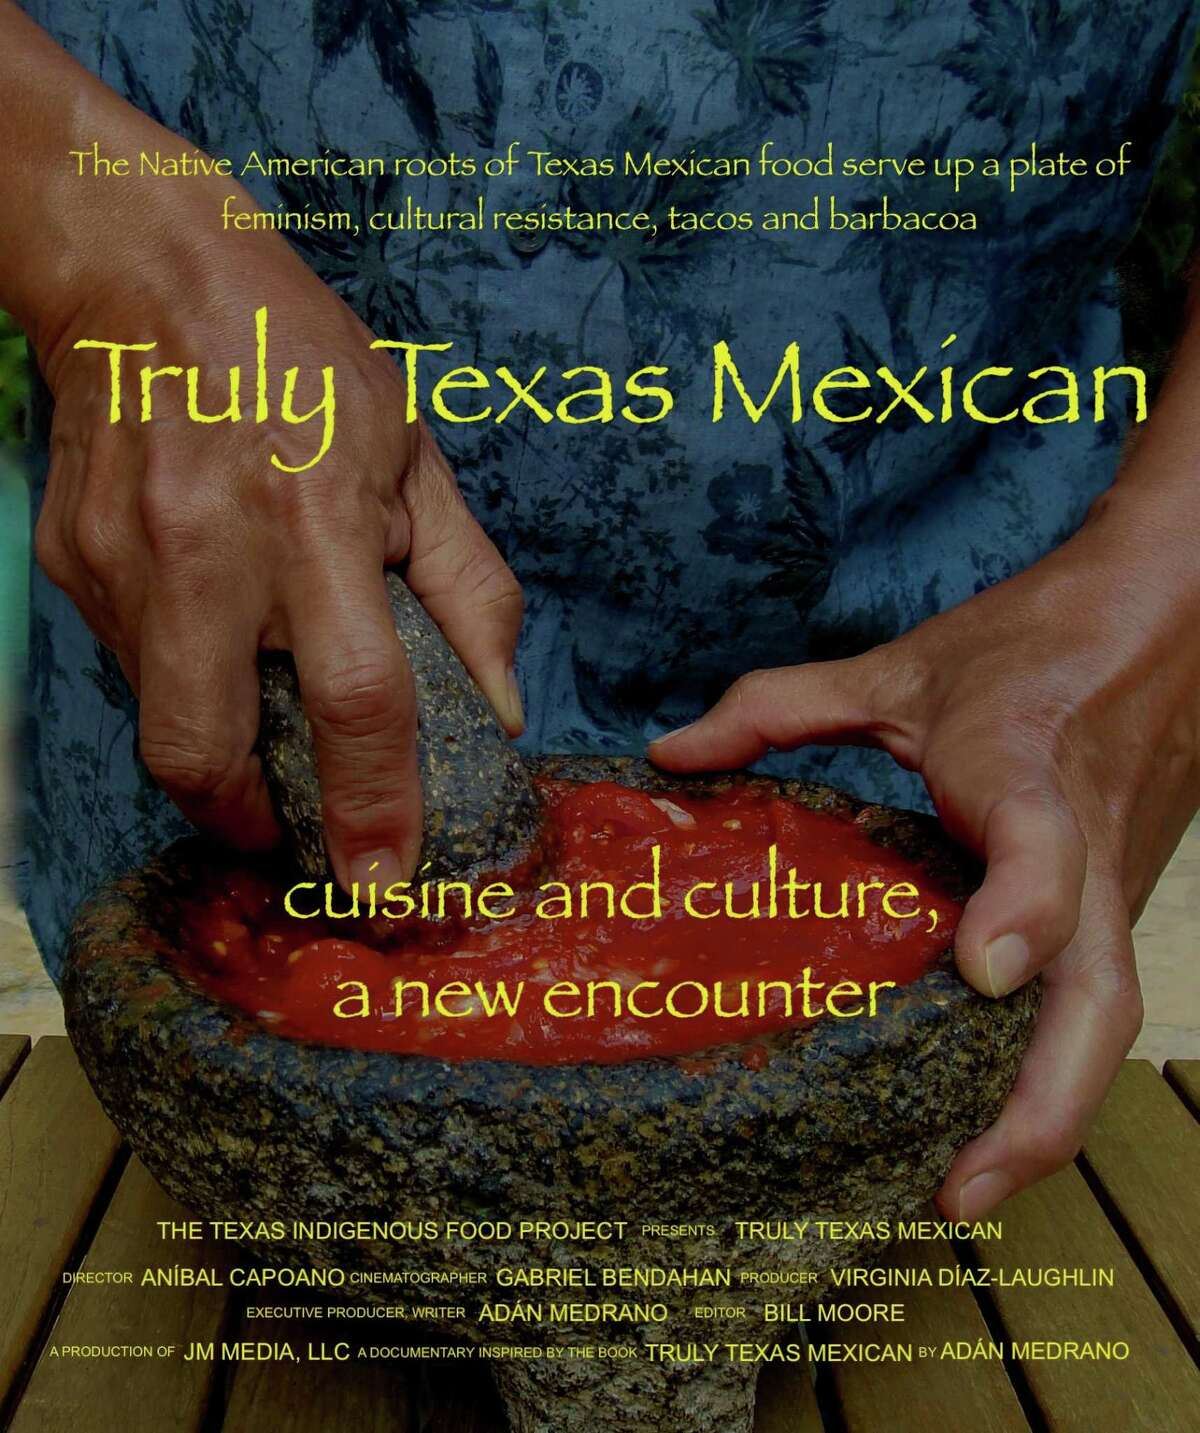 """Chef, author and filmmaker Adán Medrano's new film """"Truly Texas Mexican: Cuisine and Culture, A New Encounter,"""" was shot over nine days across Central and South Texas."""